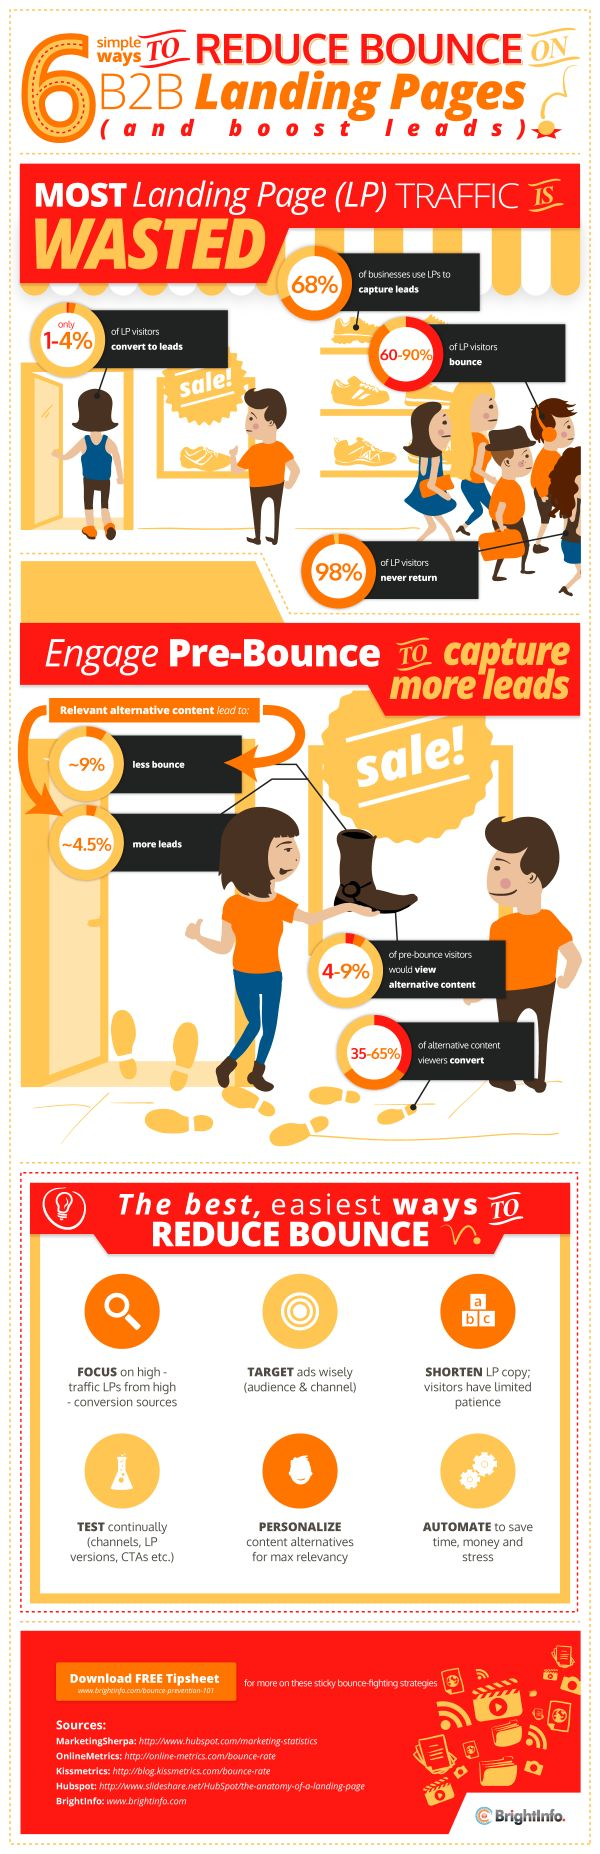 Six simple ways to reduce bounce rate on your B2B landing pages [Infographic] http://www.otriadmarketing.com/